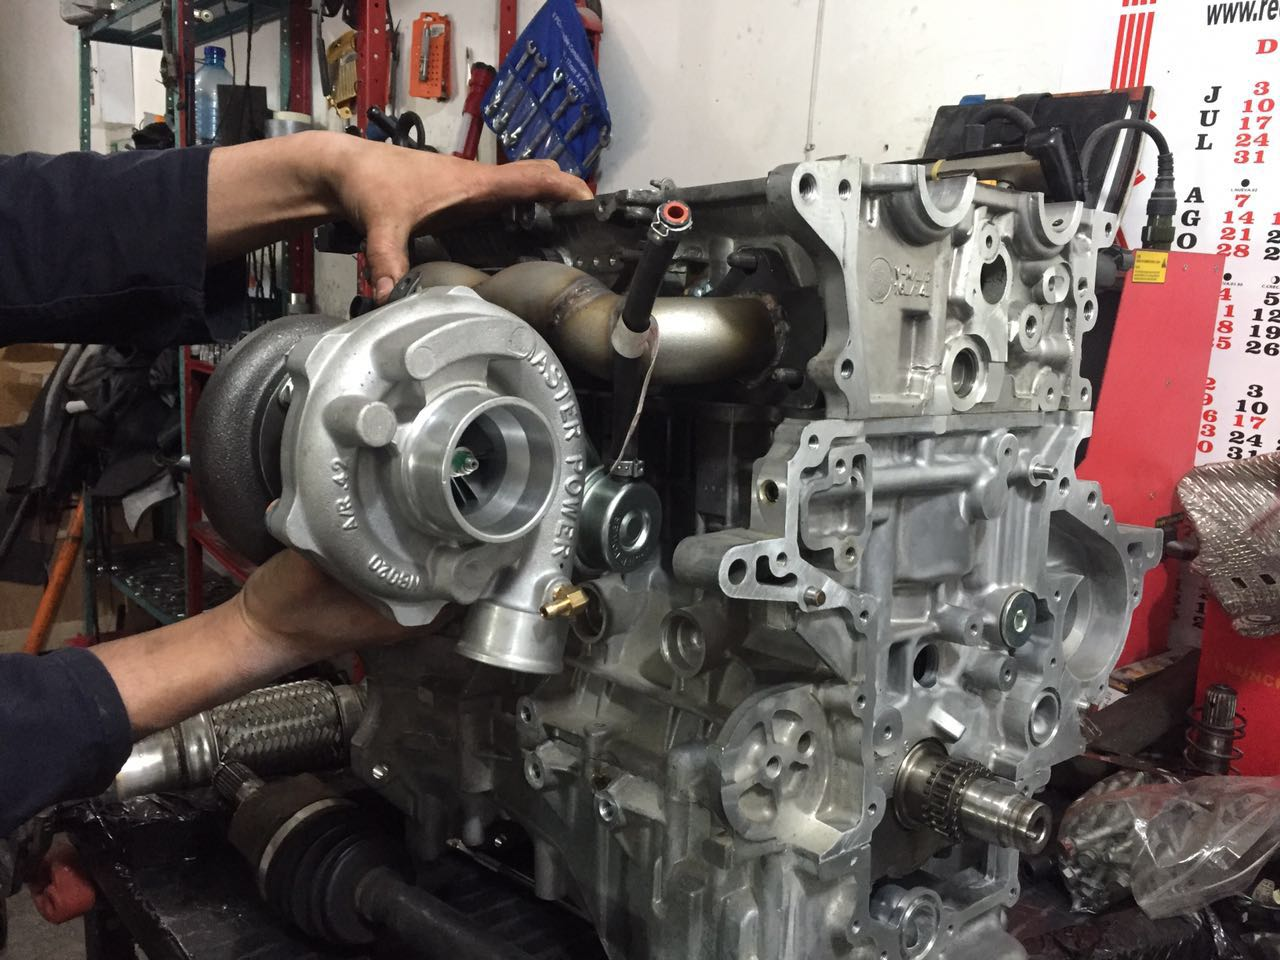 LSD Needed / 300 Hp / 1 6 gamma engine / 2014 Elantra | Hyundai Forums